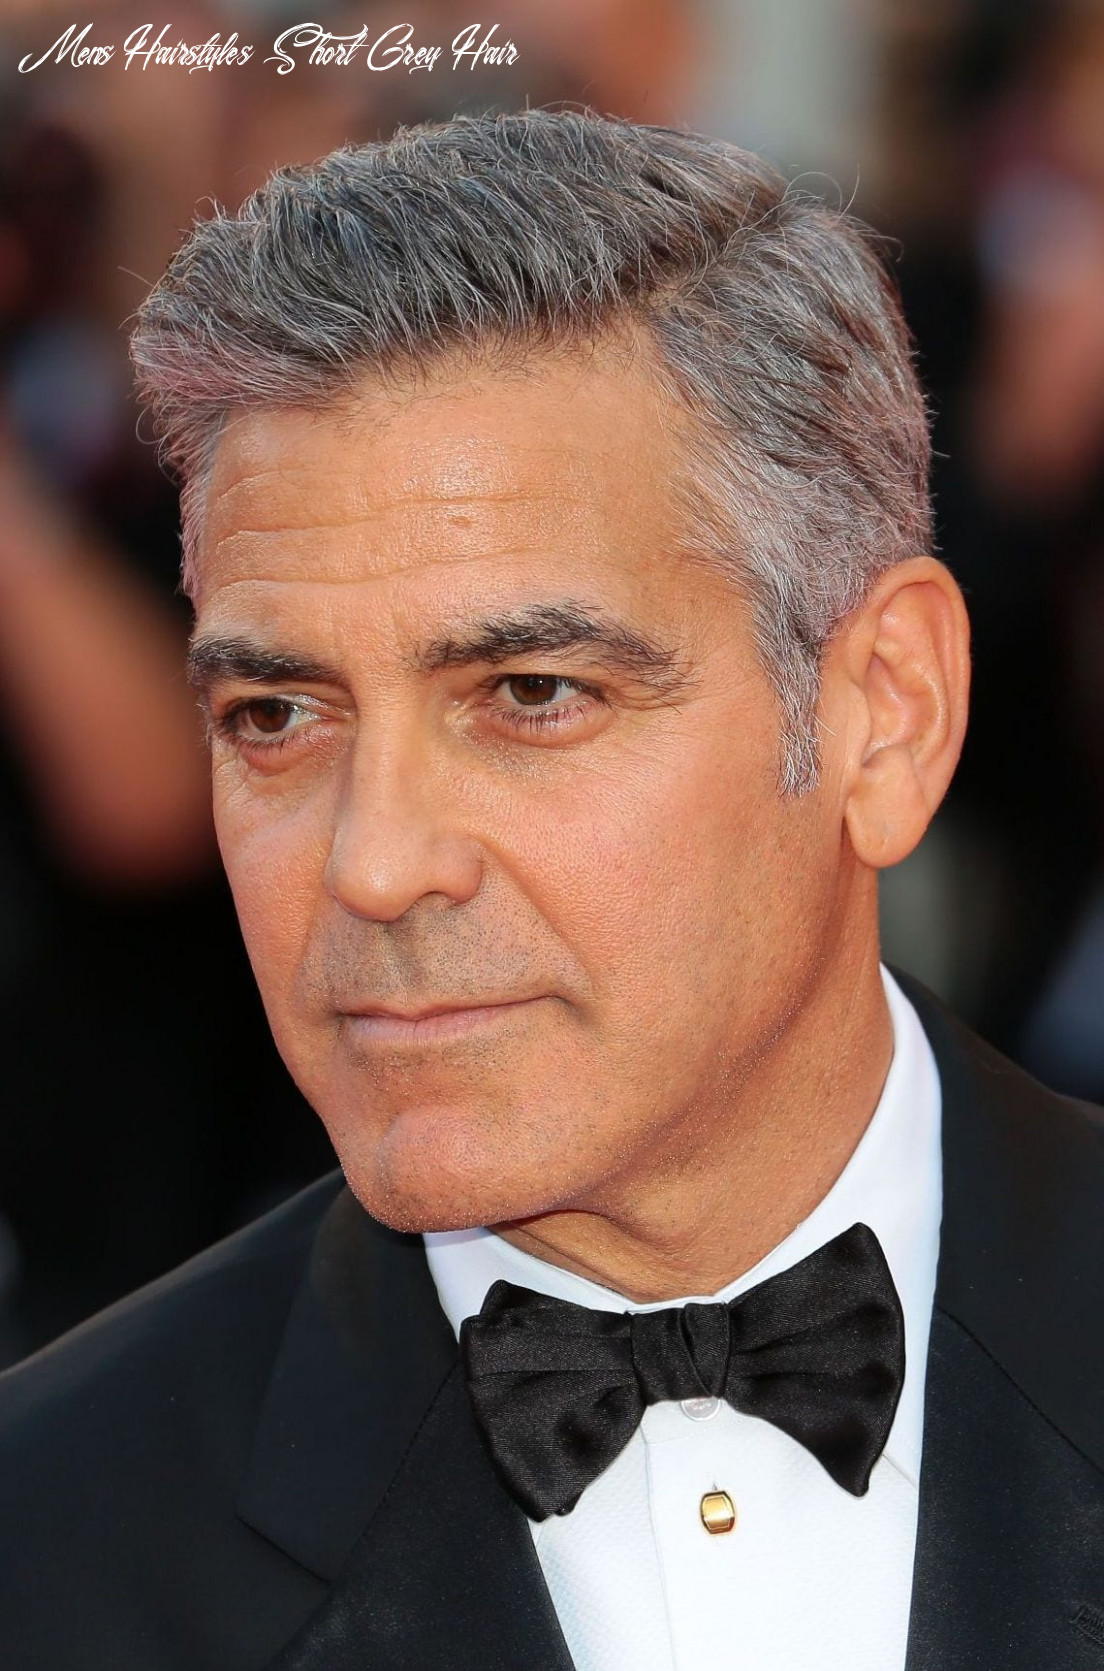 8 Glorious Hairstyles for Men With Grey Hair (a.k.a. Silver Foxes)